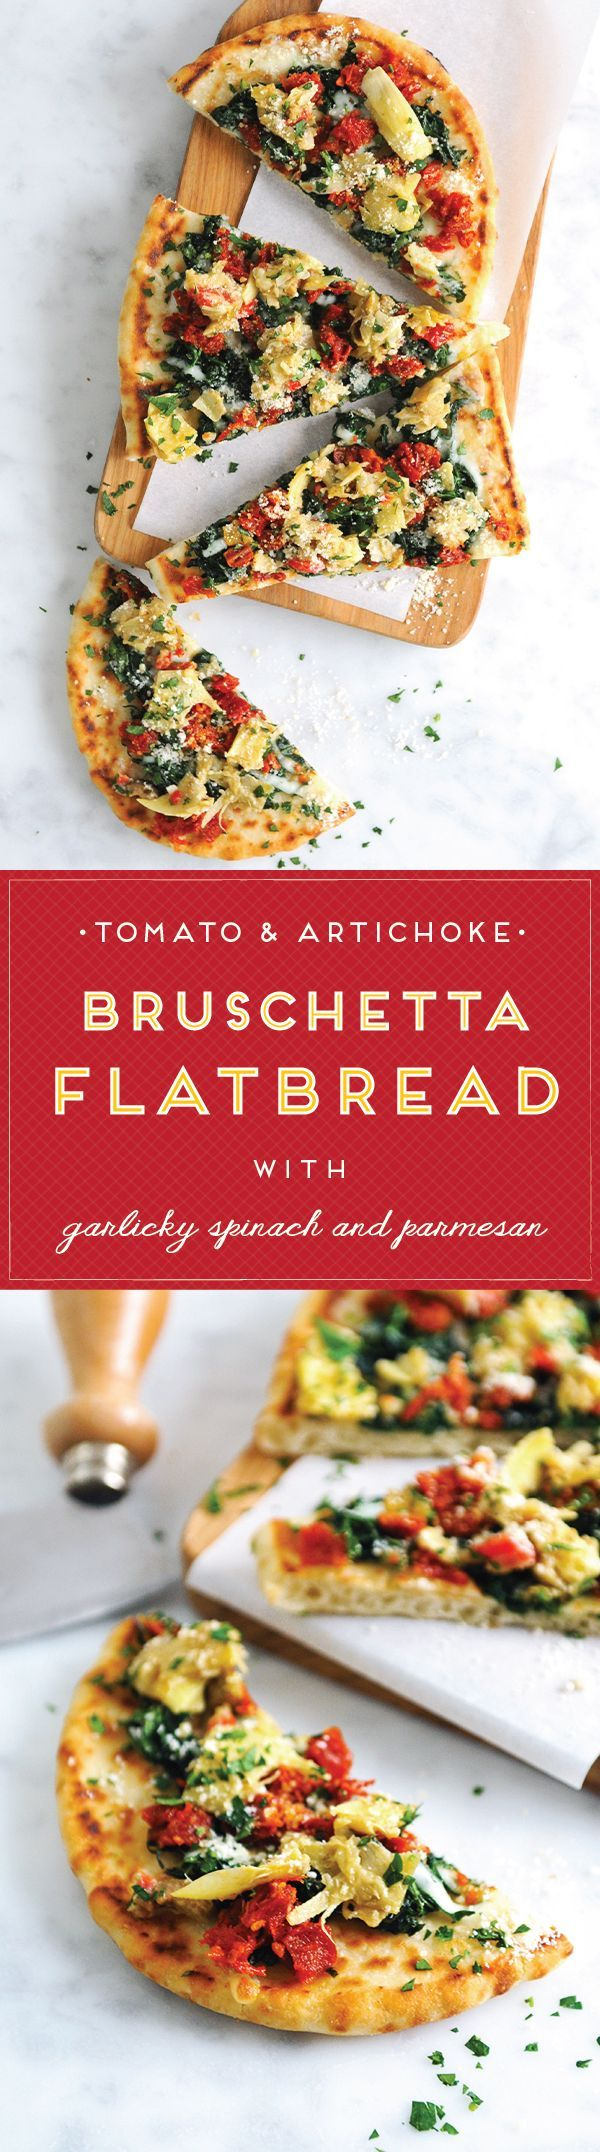 Perfect for spring! // Sun-Dried Tomato & Artichoke Bruschetta Flatbread